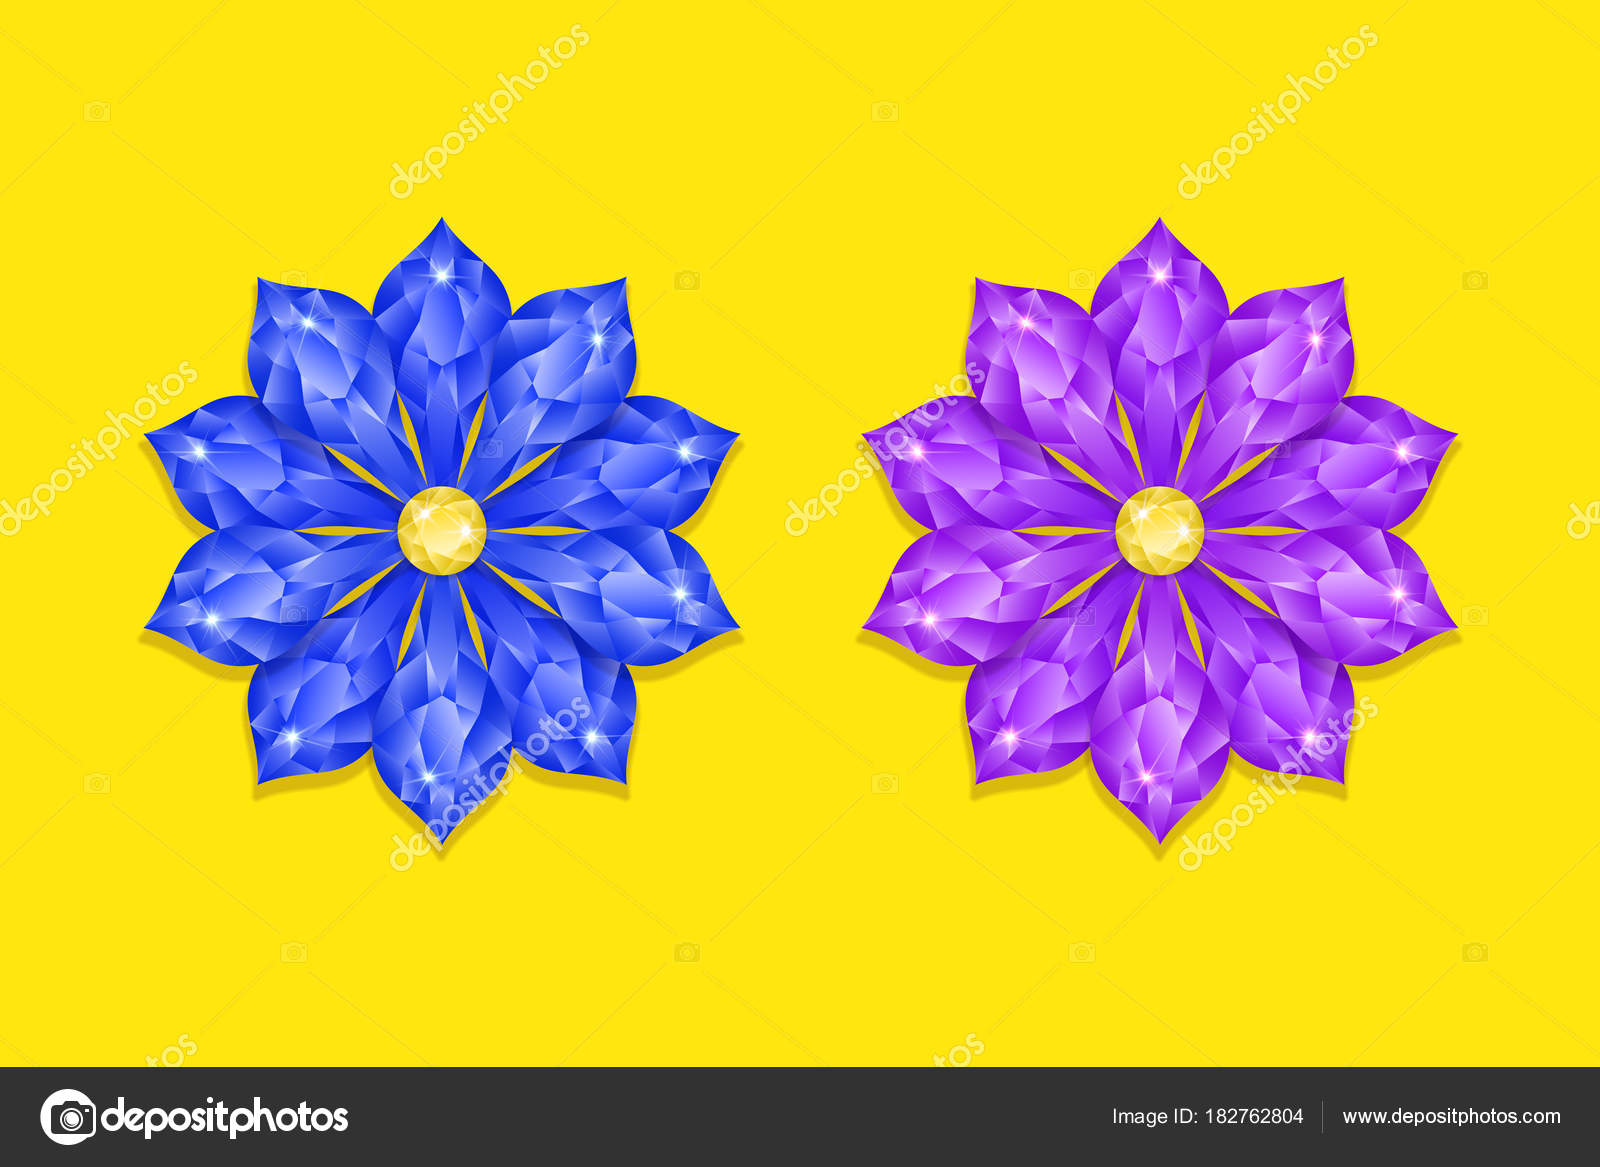 Blue and purple diamond flower stock vector artskill2k17gmail blue and purple diamond flower stock vector izmirmasajfo